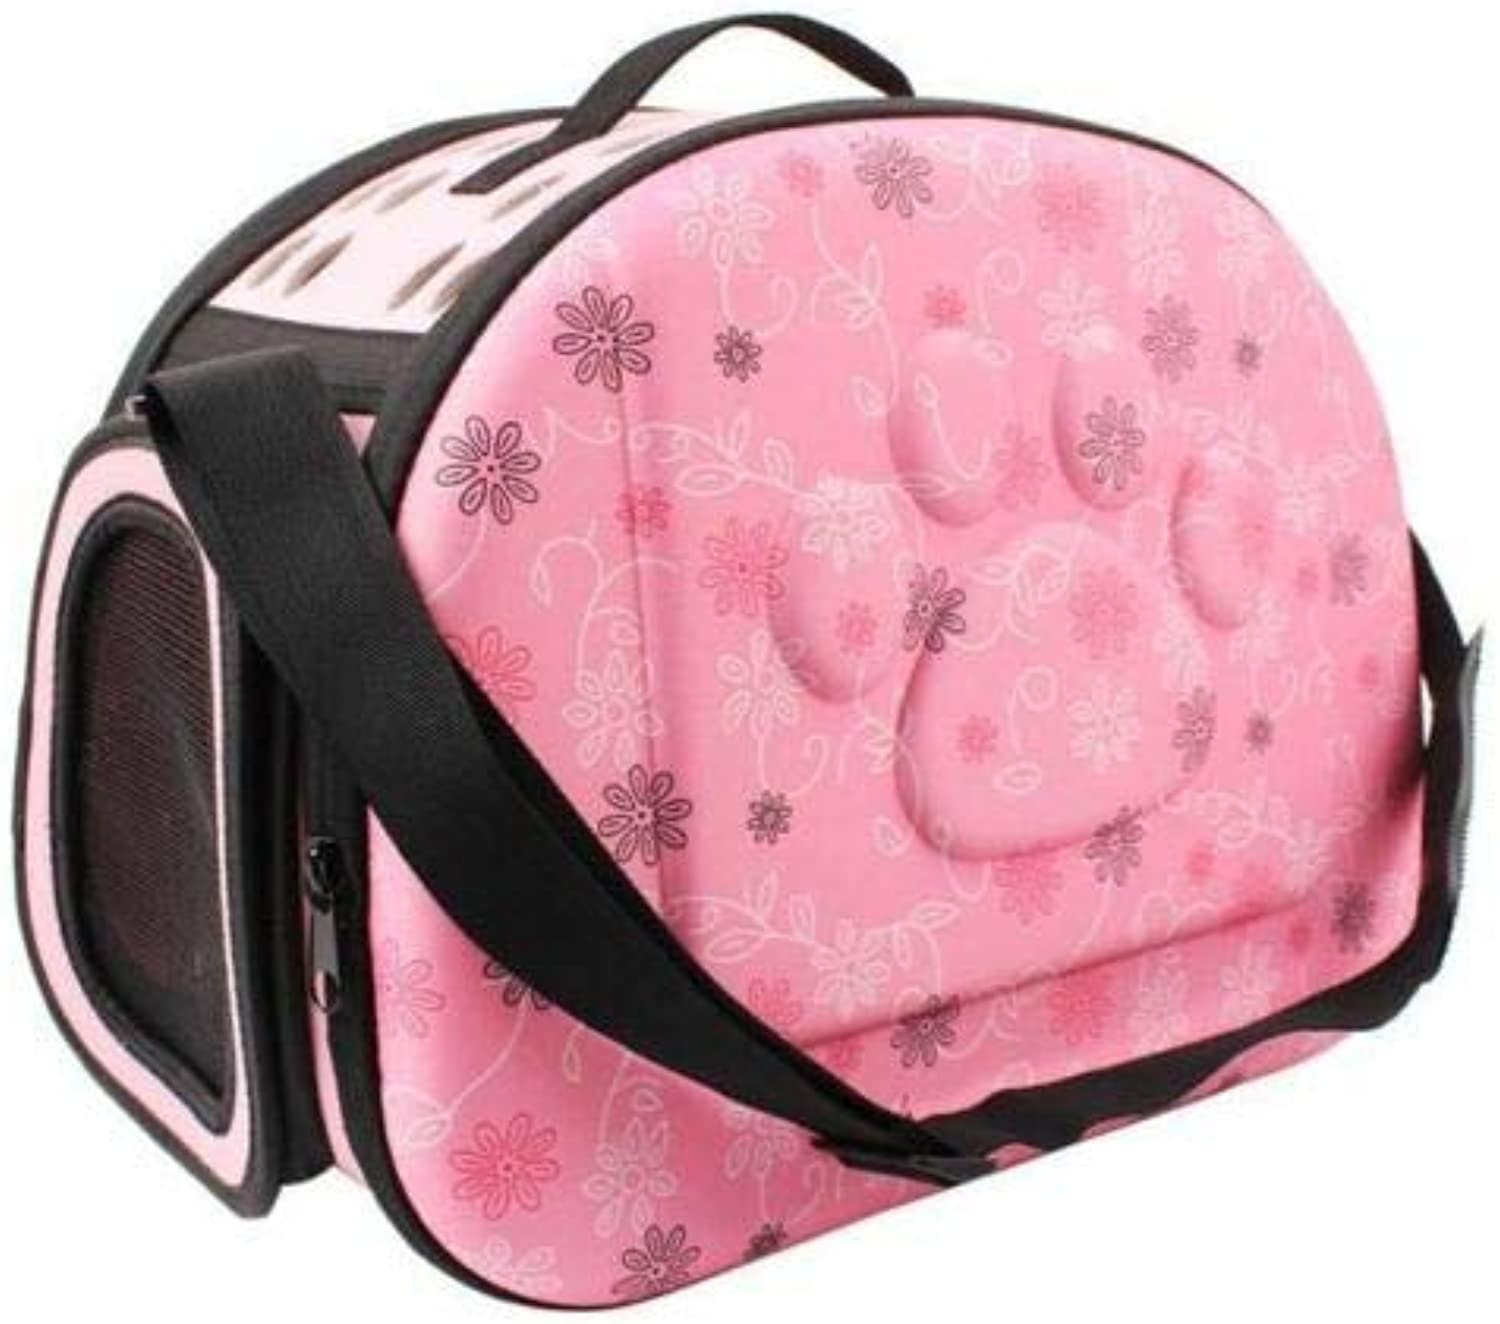 FidgetKute Folgeable Soft Pet Carrier Puppy Dog Outdoor Travel Shoulder Bag for Smal Pink 43X27X31cm